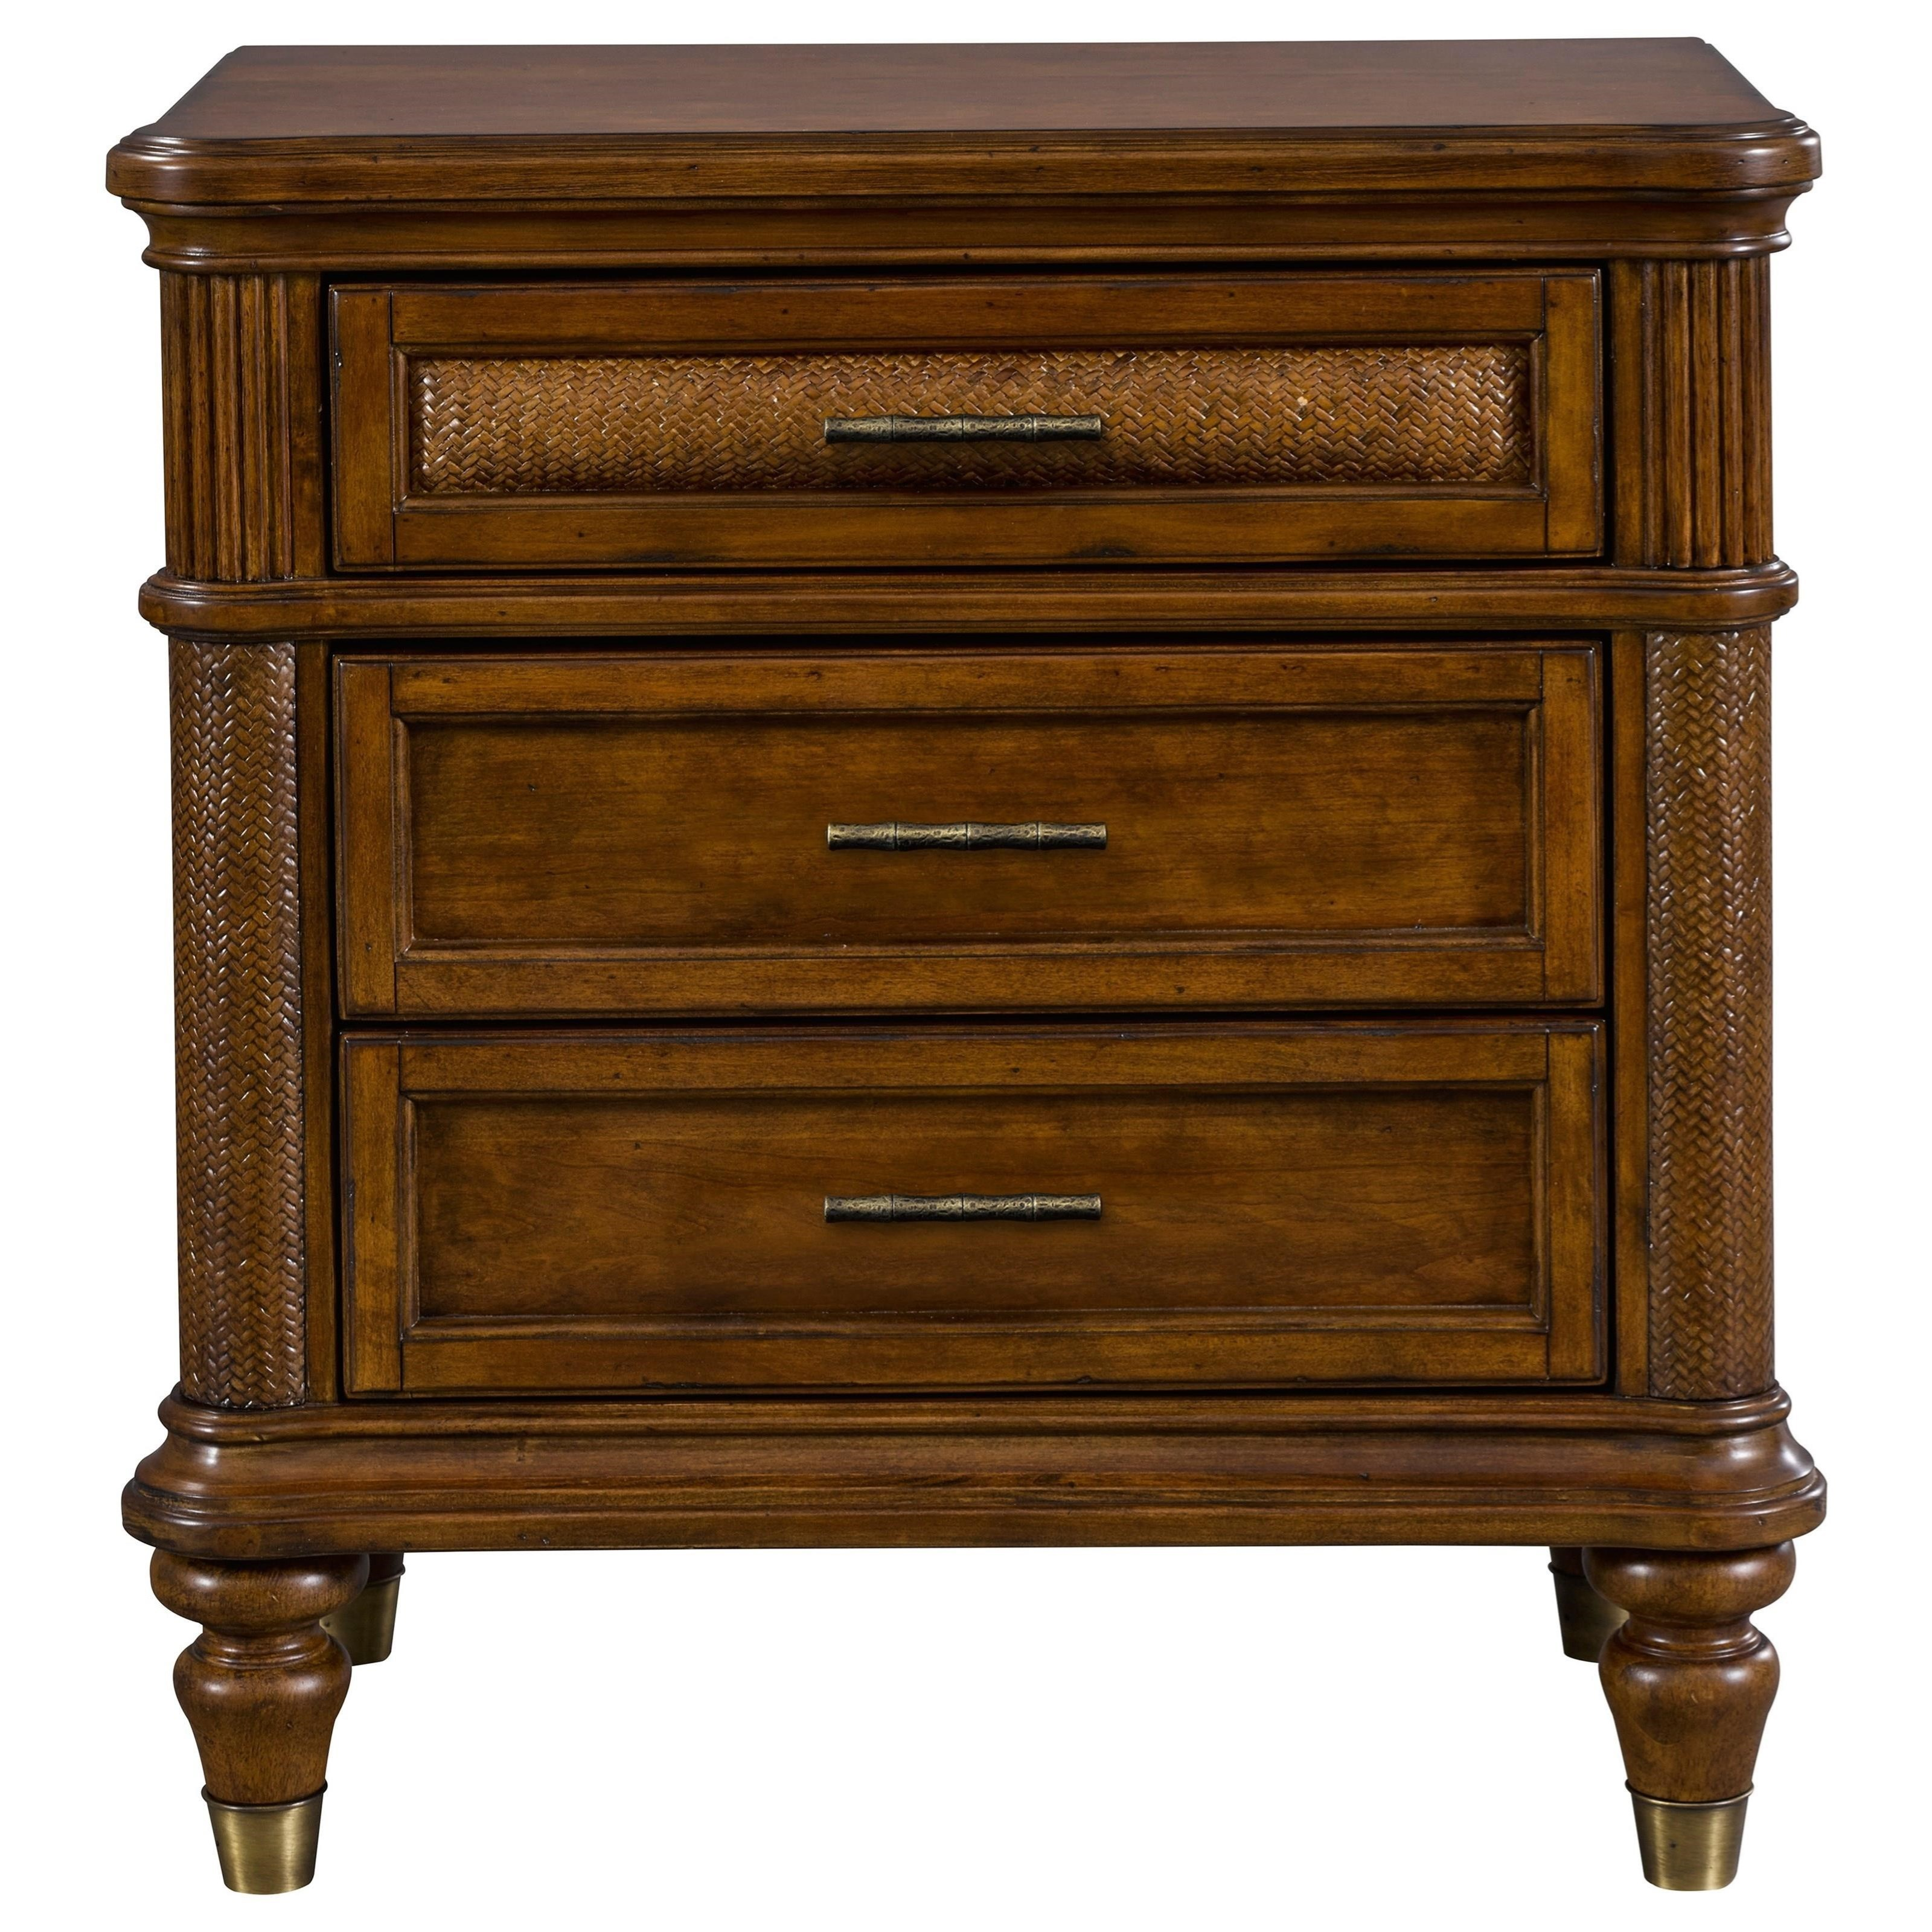 Broyhill Furniture Amalie Bay 4548 292 3 Drawer Nightstand